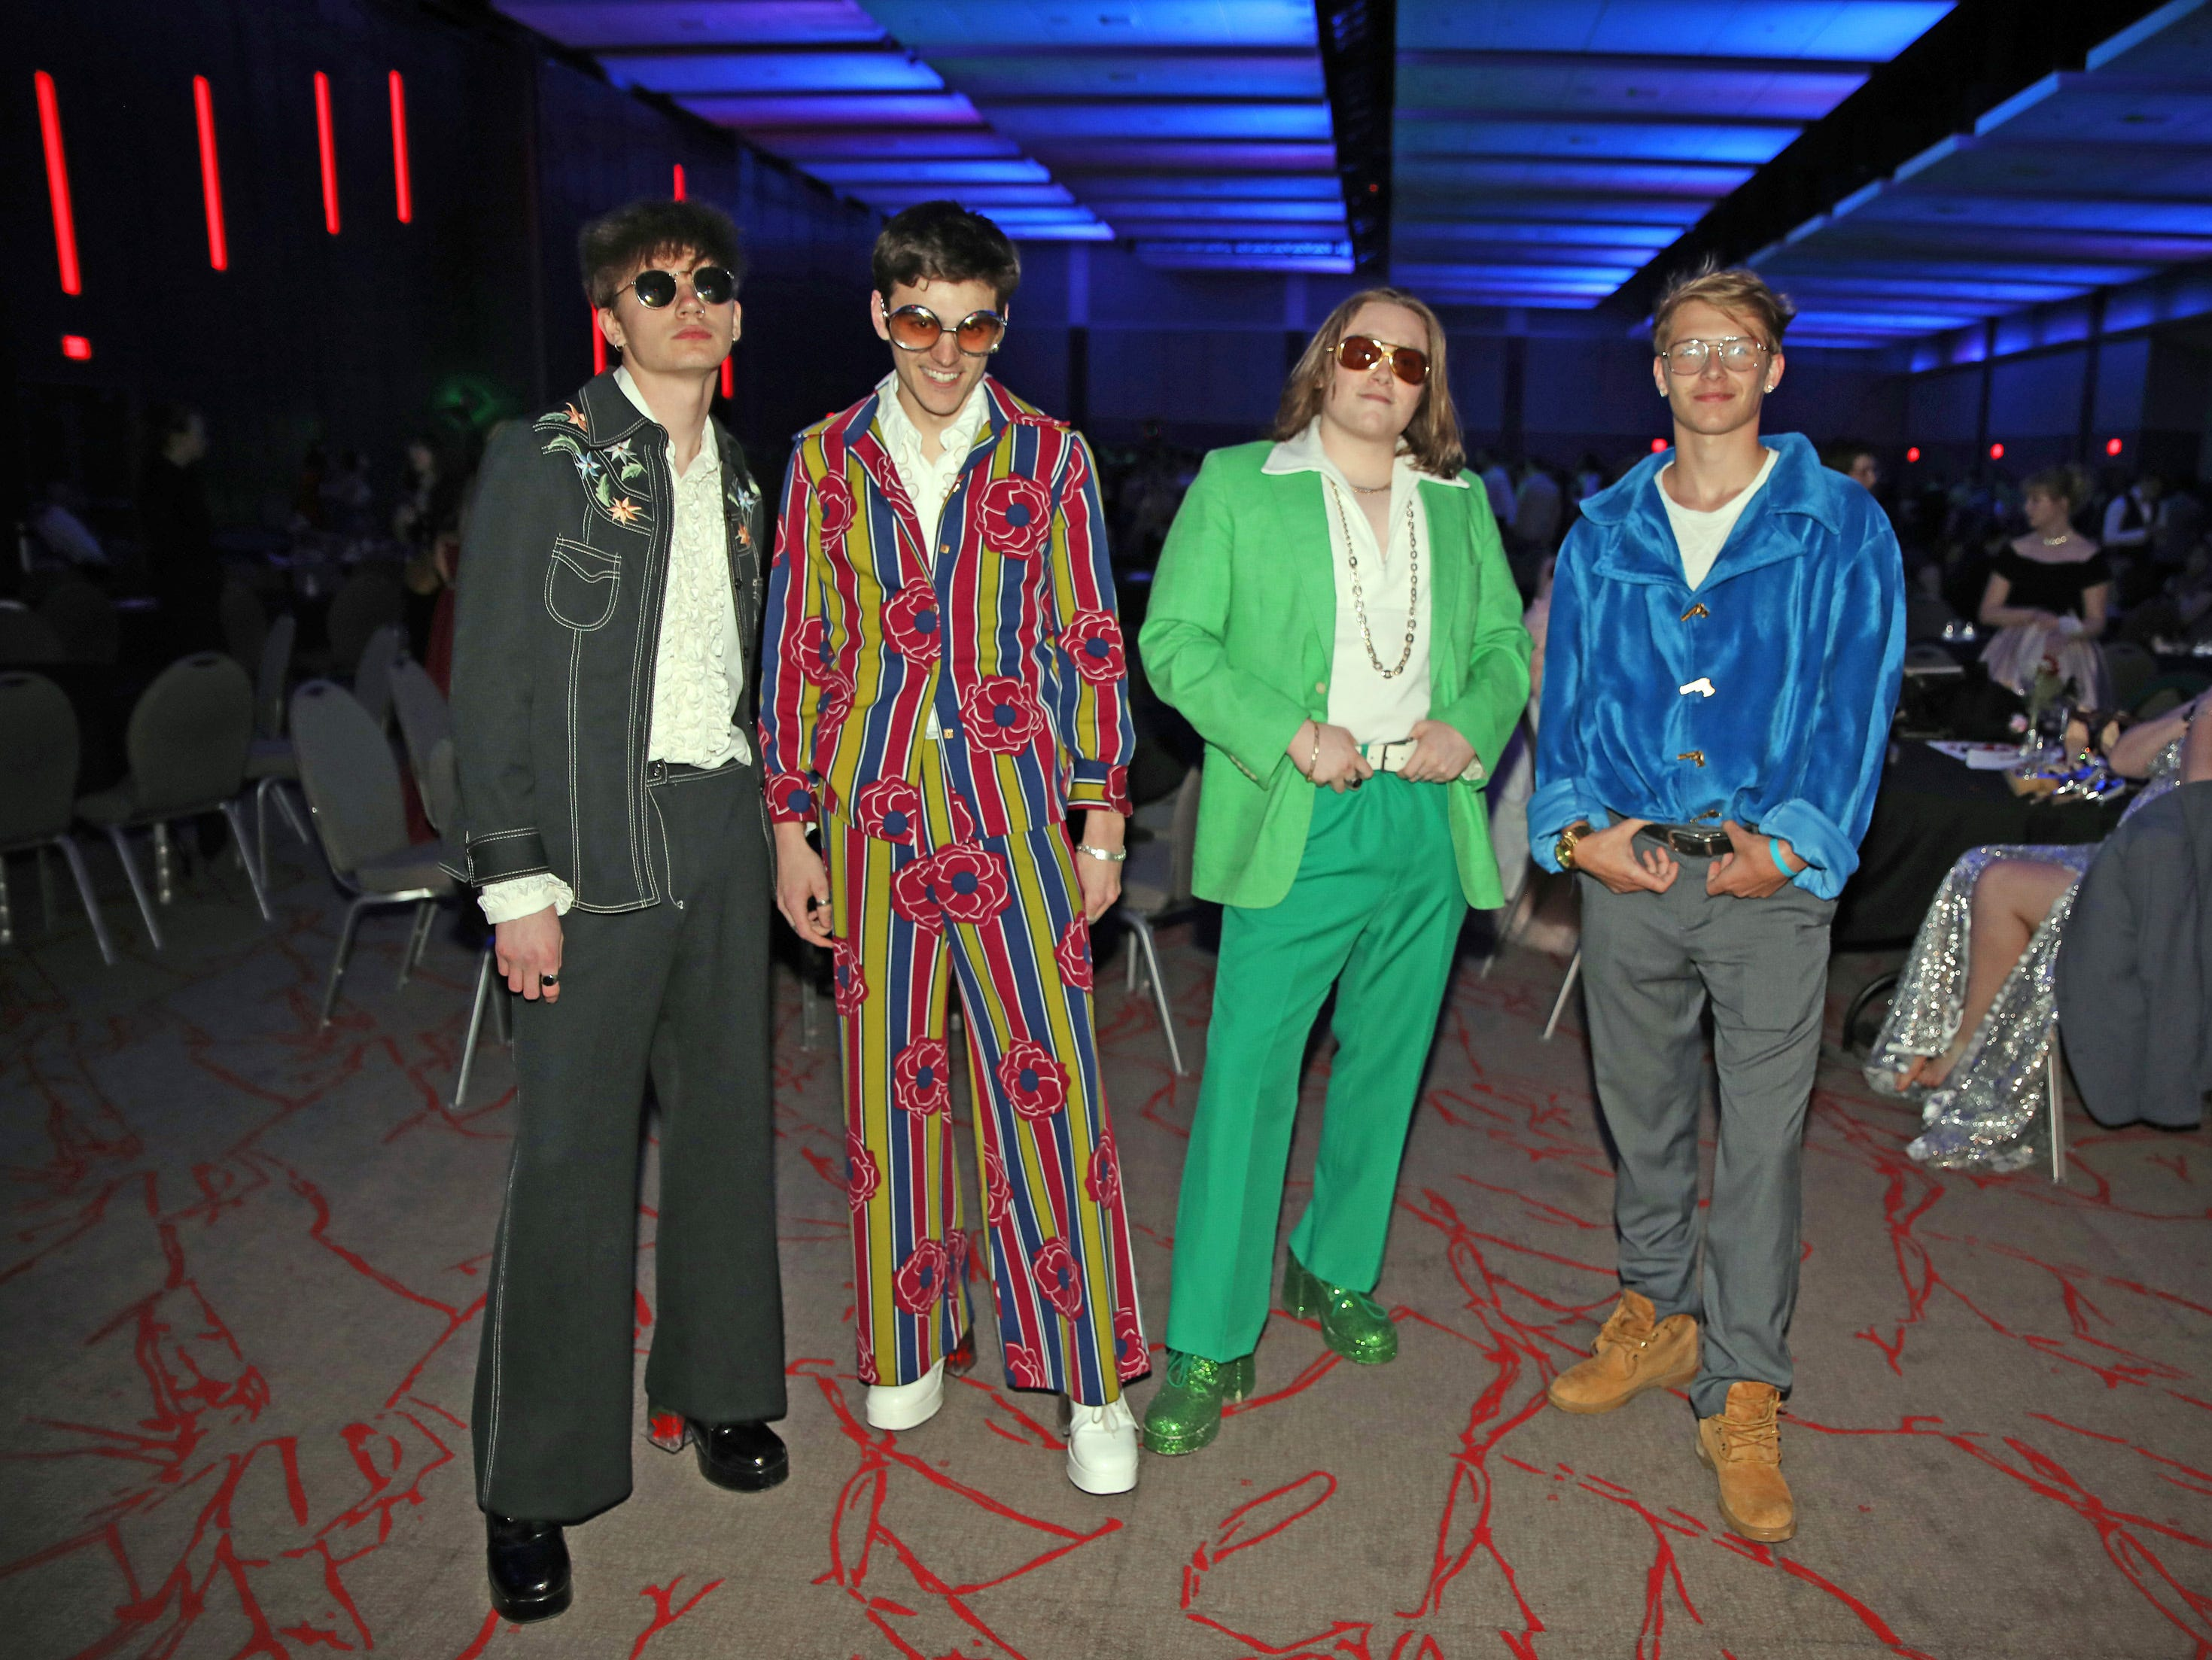 Left to right: Jaedon Warren, Jack Portz, Ben Cirksena, and Joey Risola bring the 1970s back to the Waukee High School Prom at the Ron Pearson Center in West Des Moines on Saturday, April 6, 2019. The theme for this year's prom was Moonlight and Roses and then followed by a tropical-themed Waukiki After Prom from 11 p.m. to 5 a.m.